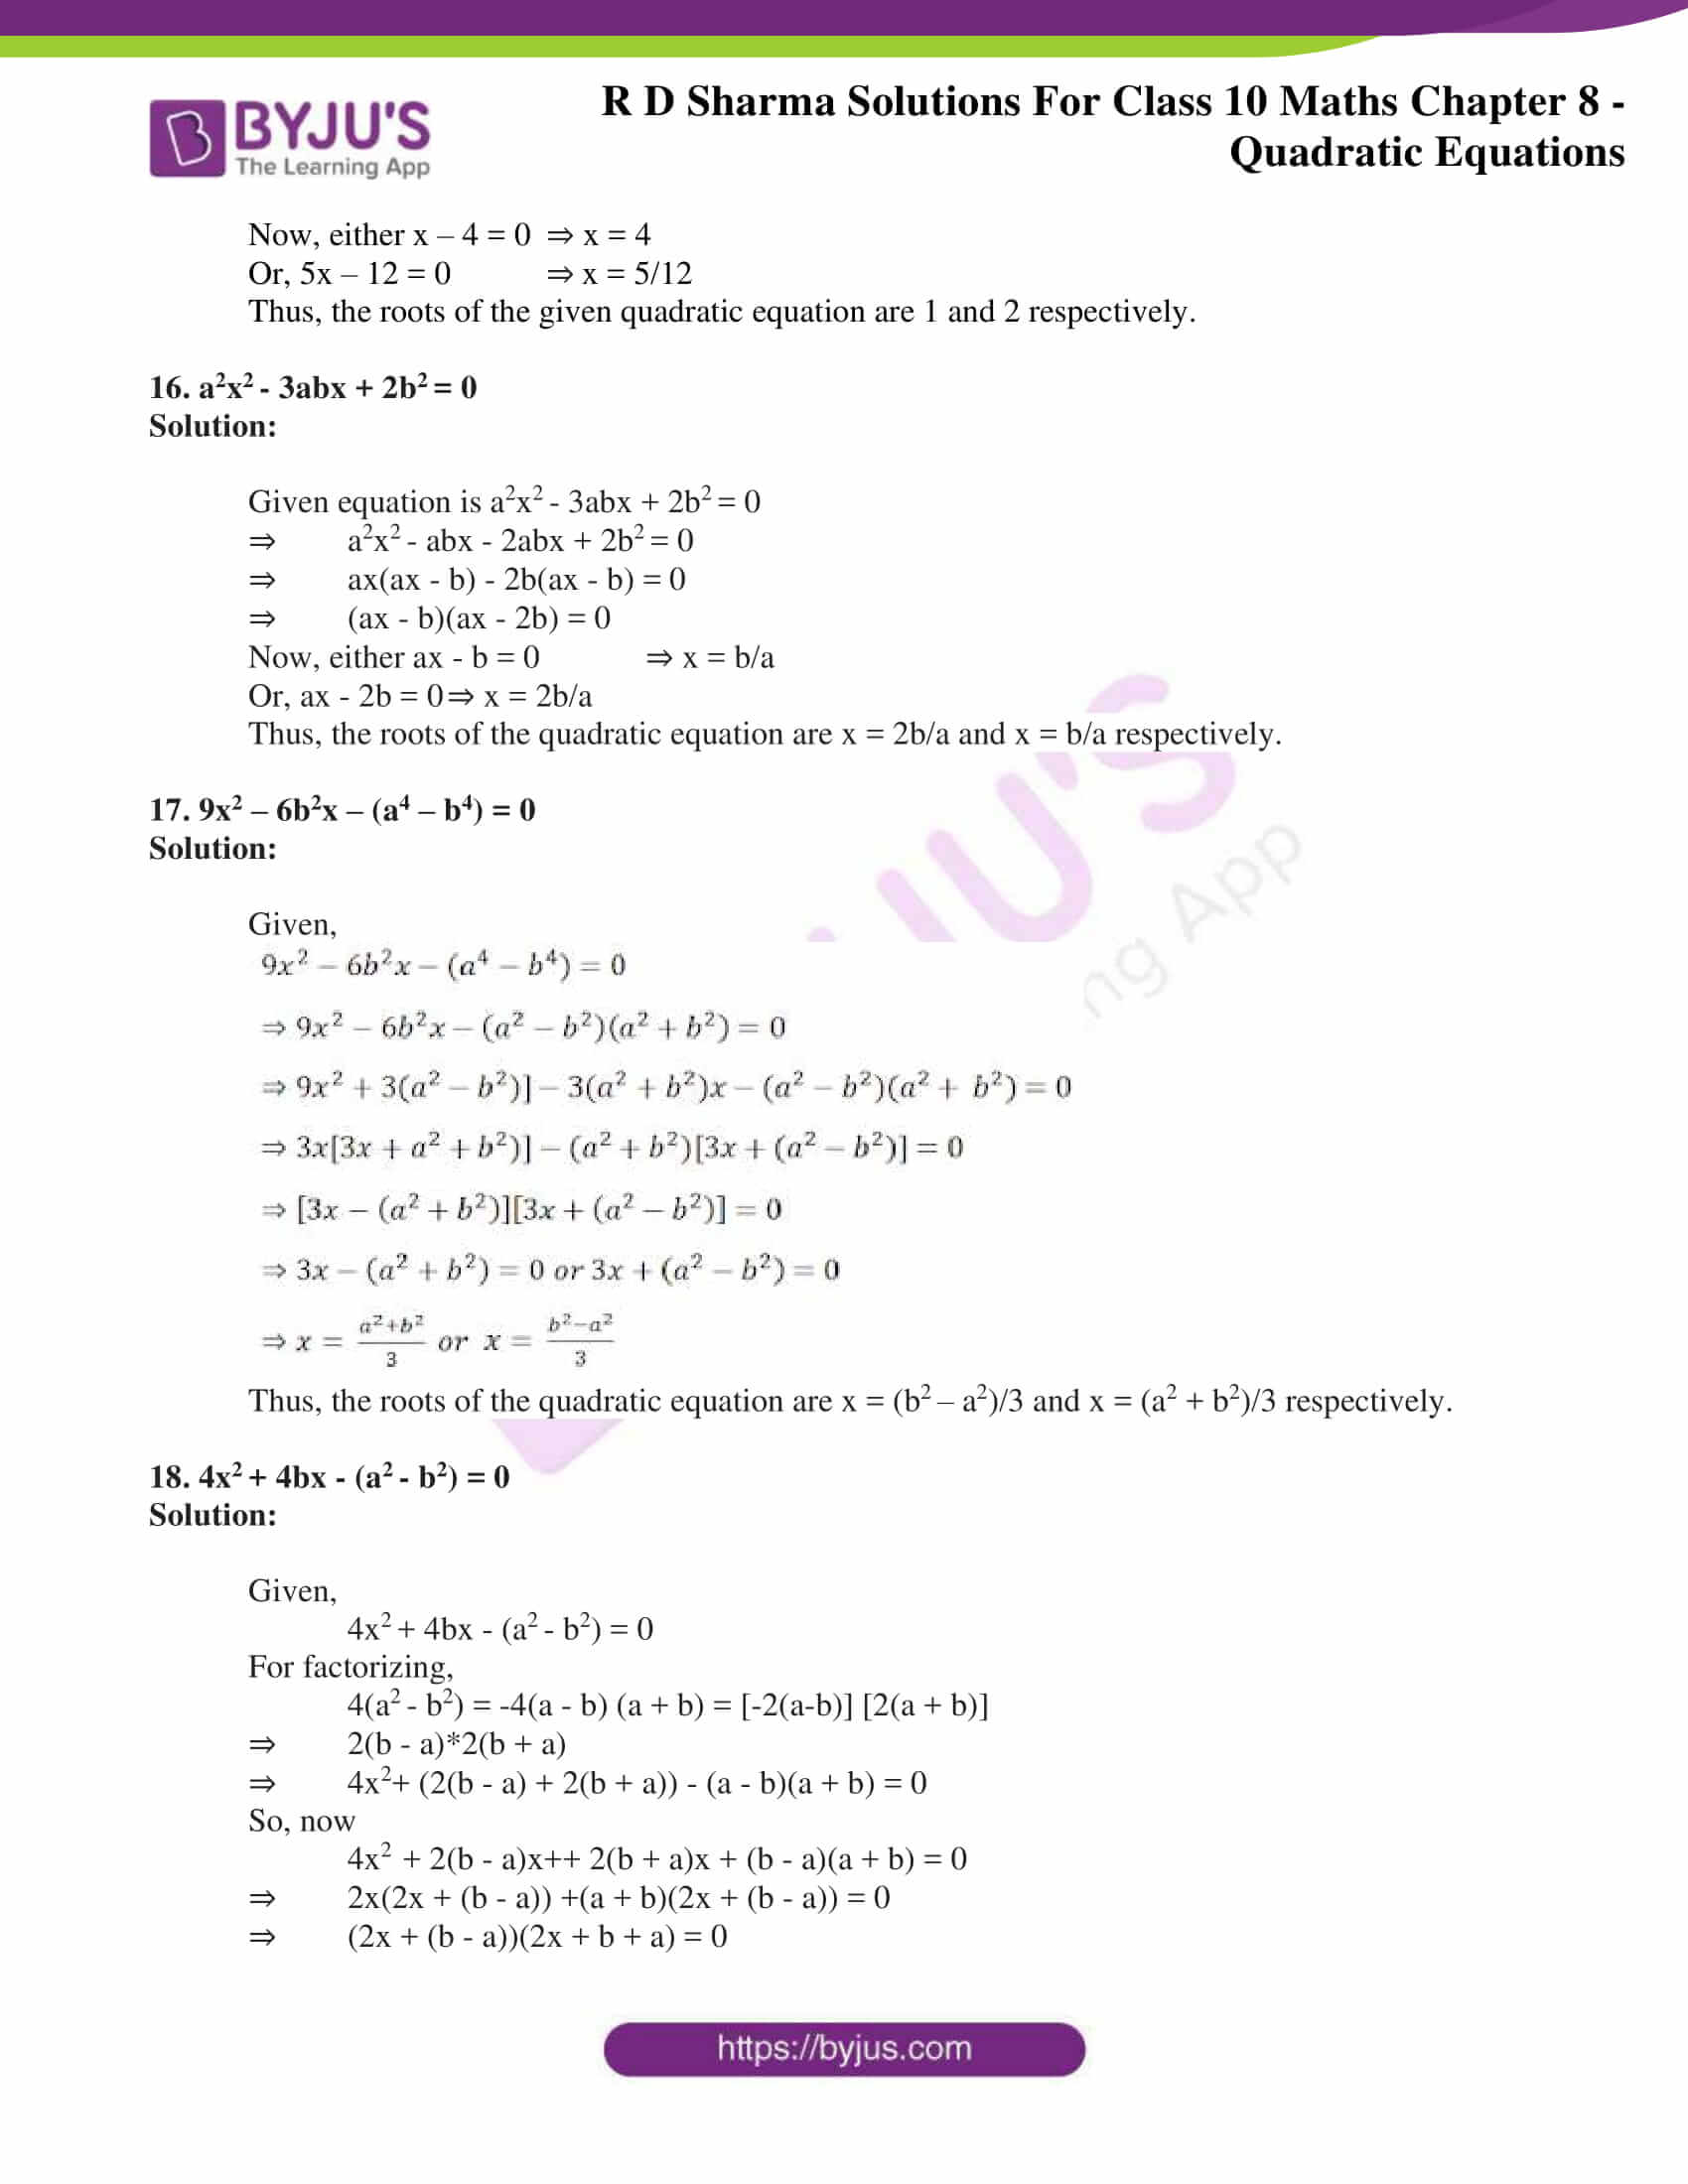 RD Sharma Solutions for Class 10 Chapter 8 Quadratic Equations 16